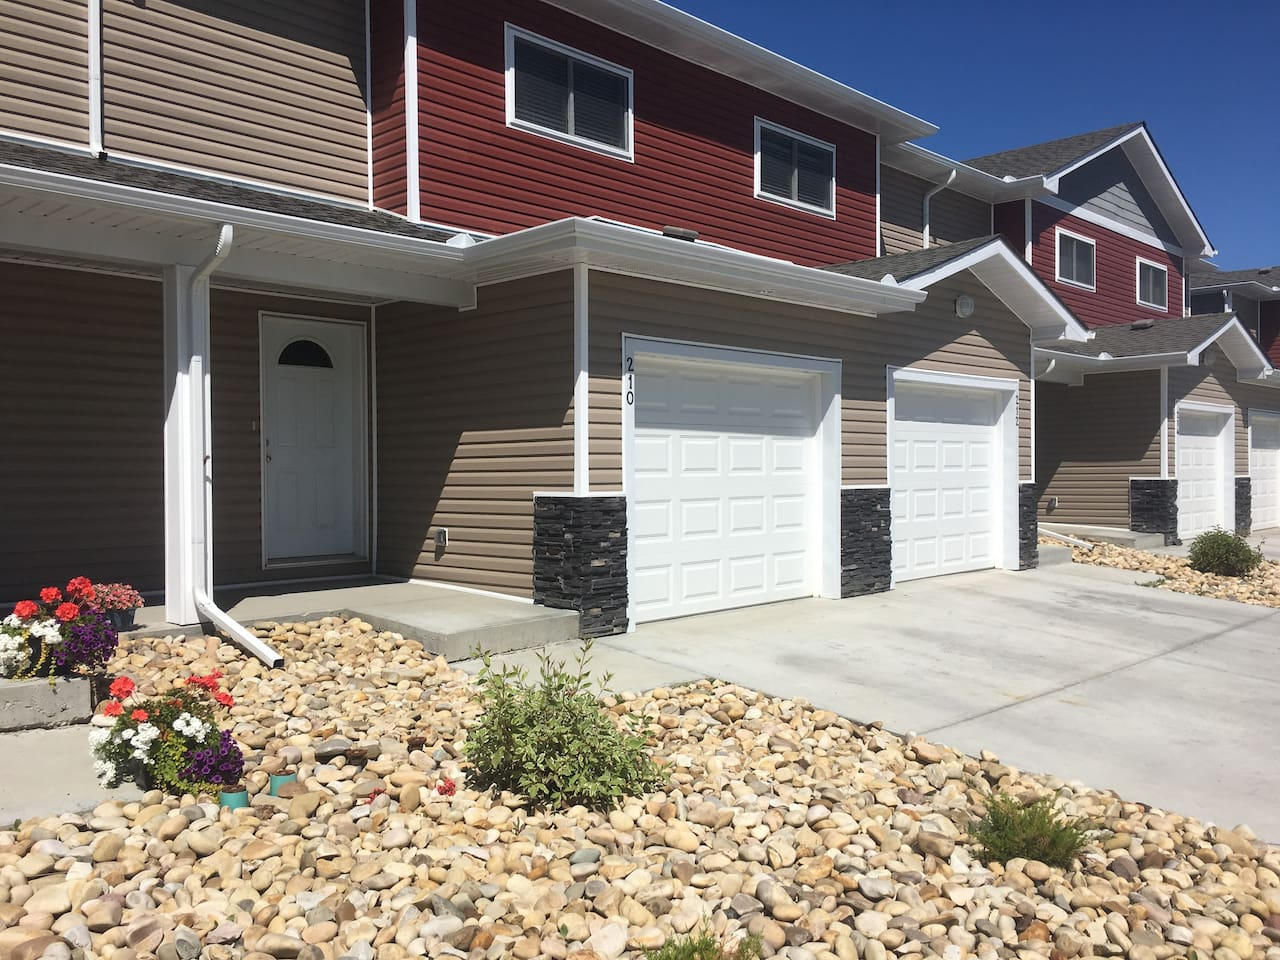 Our homes come equipped with garage access and private driveway parking.